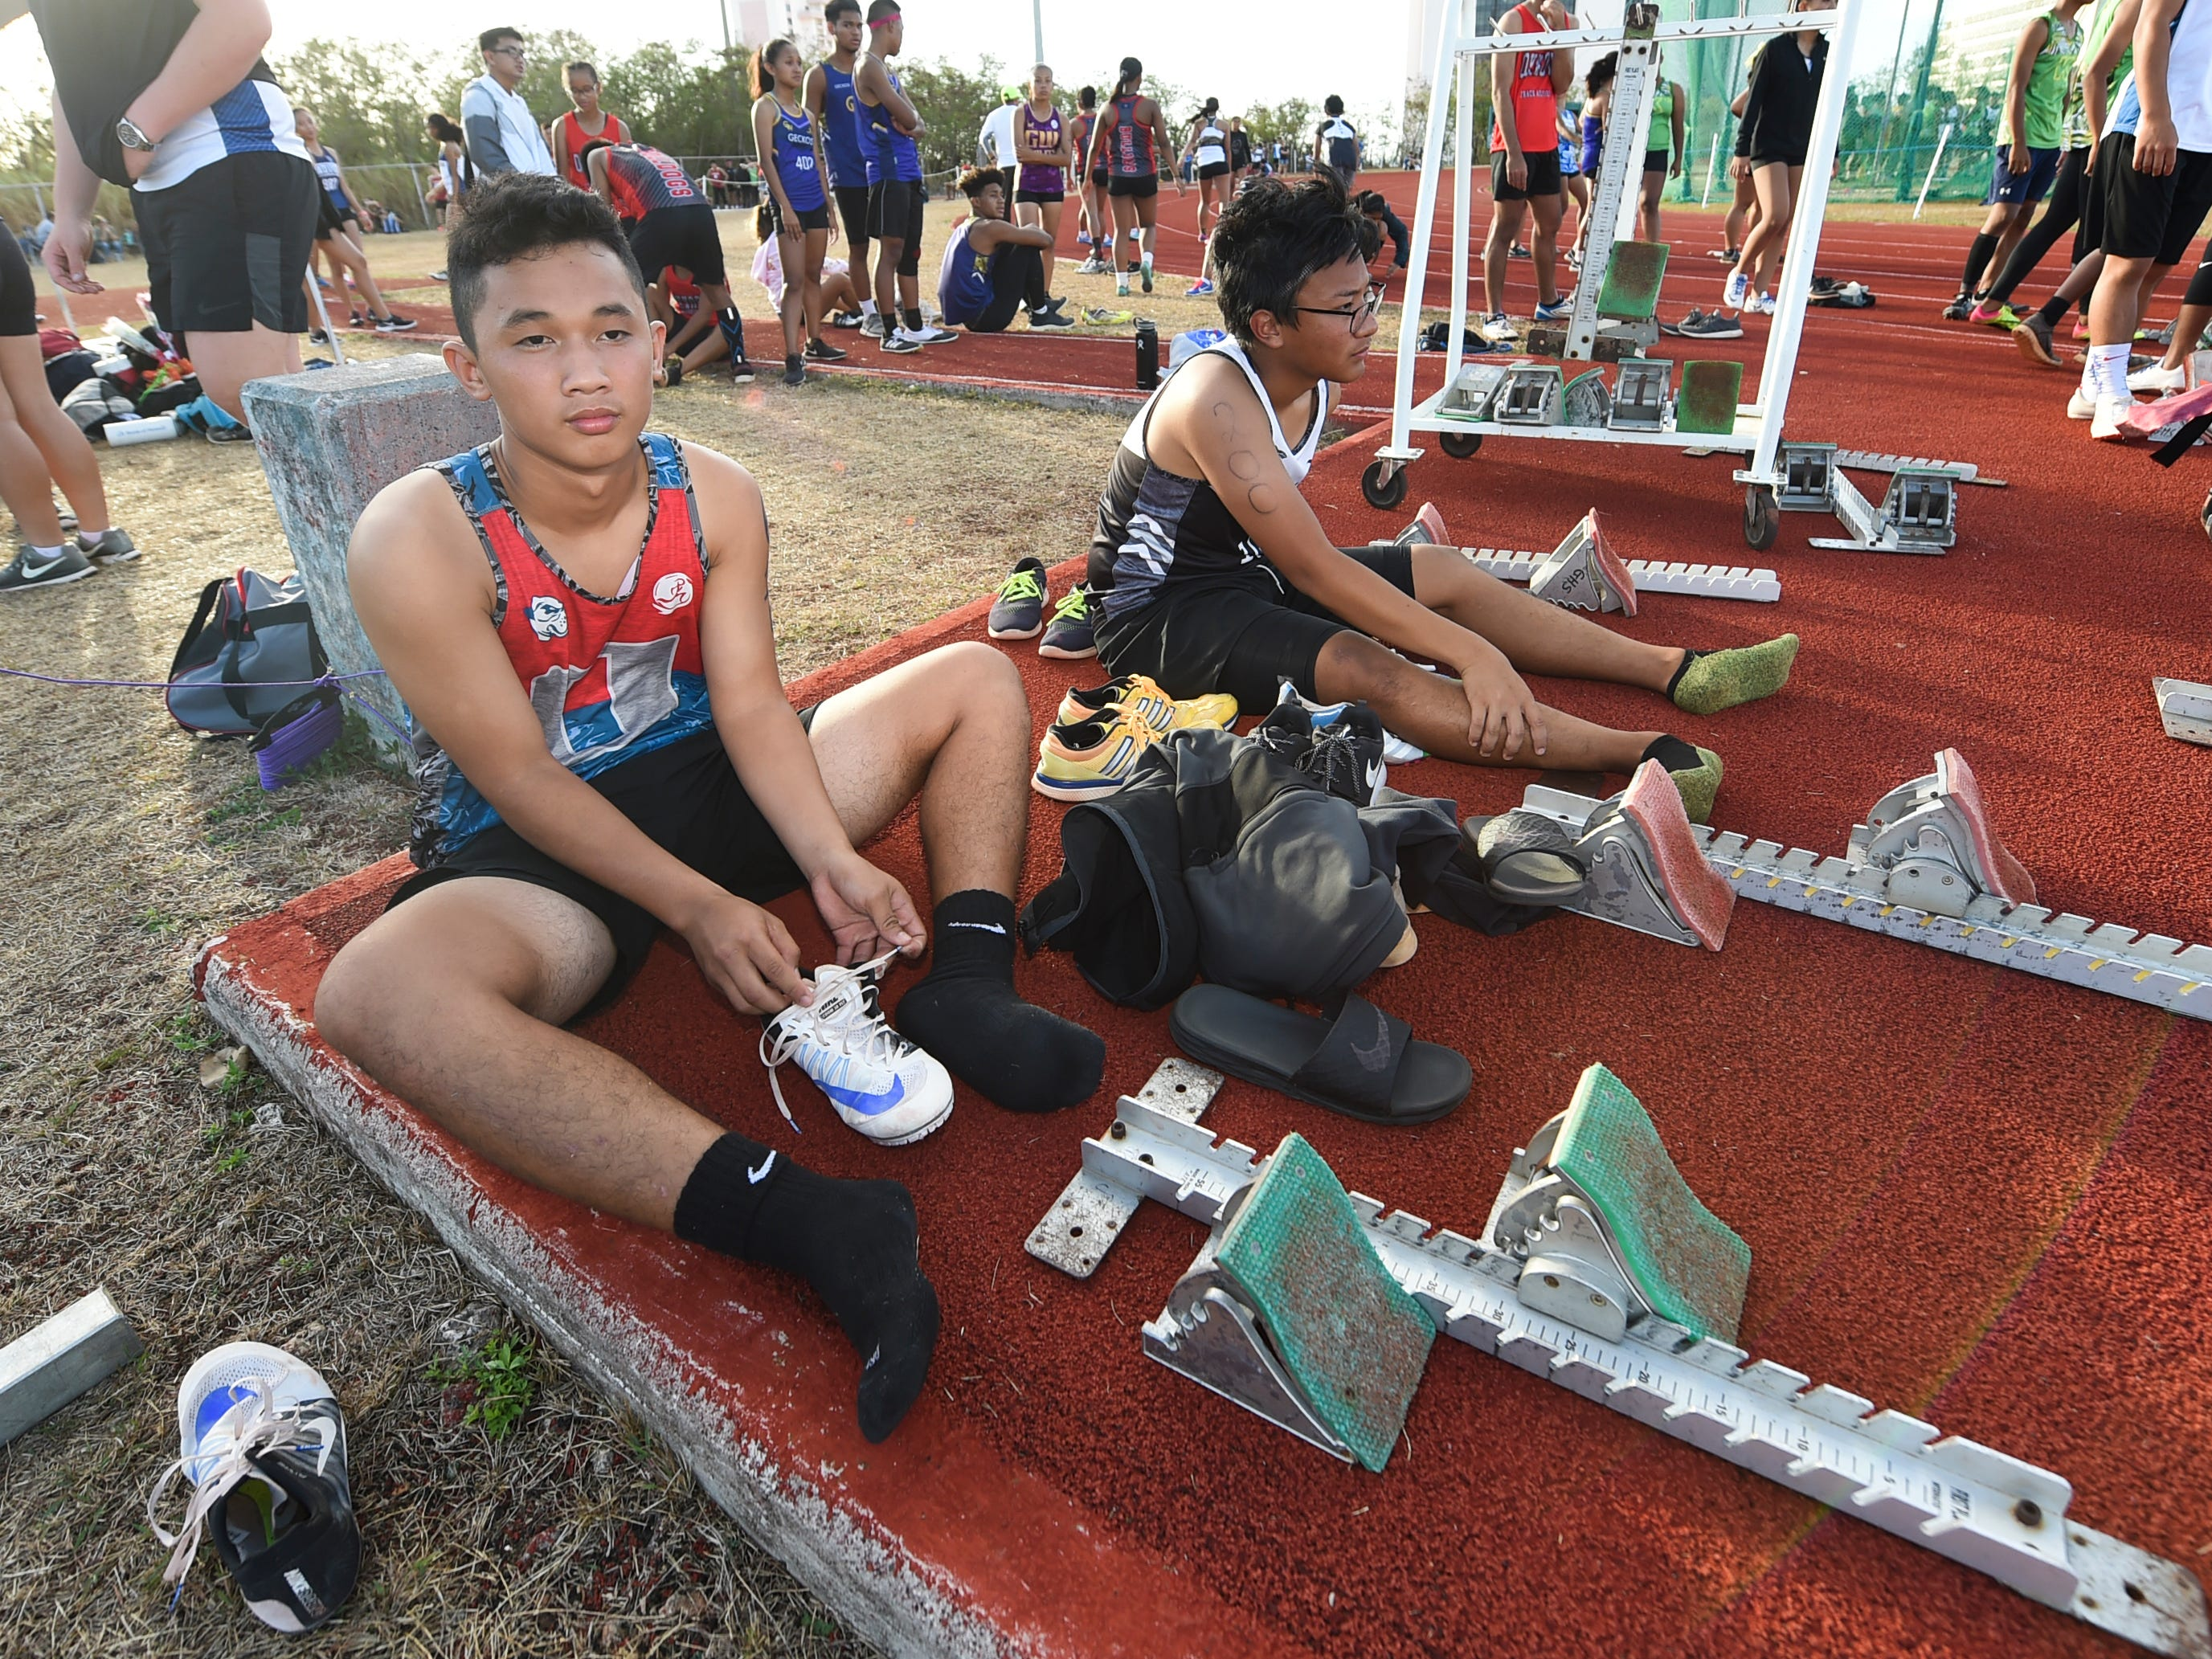 Track and field athletes during a downtime in the sixth IIAAG Track and Field meet at John F. Kennedy Ramsey Field in Tamuning on May 10, 2019.